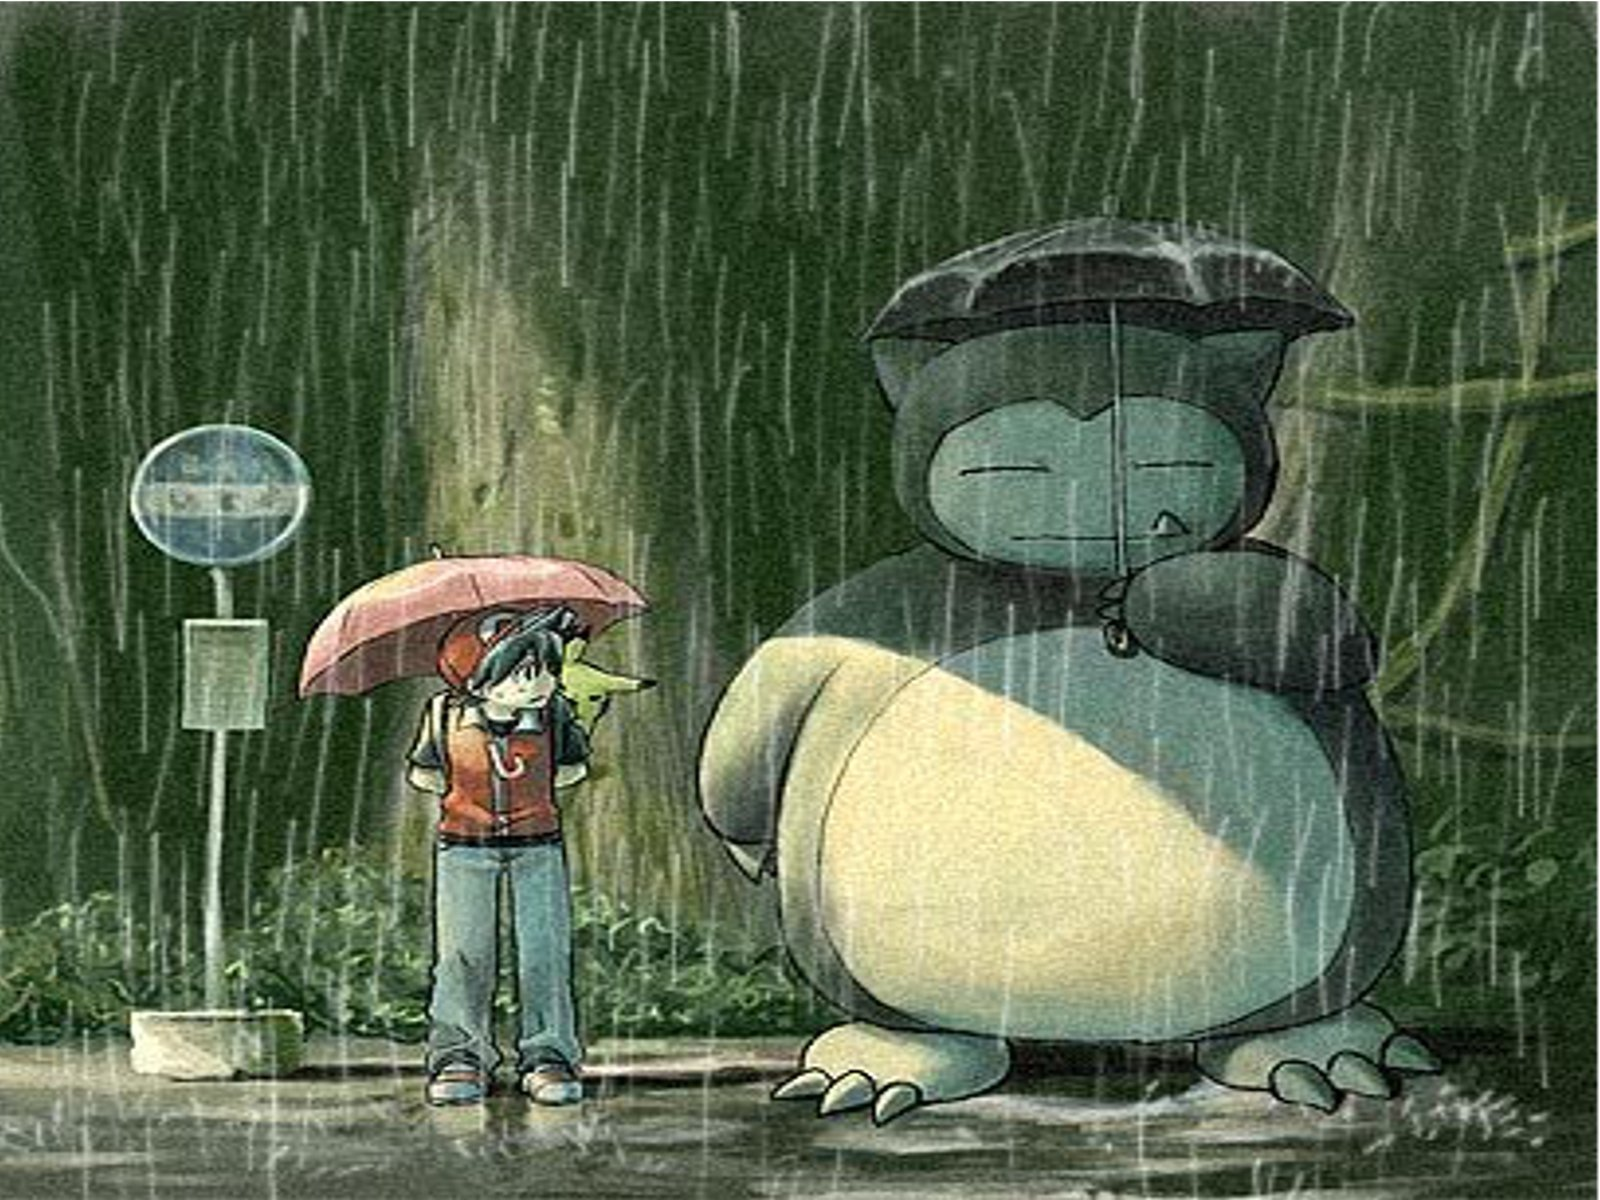 Best HD Snorlax Wallpaper 35147 Wallpaper Download HD Wallpaper 1600x1200